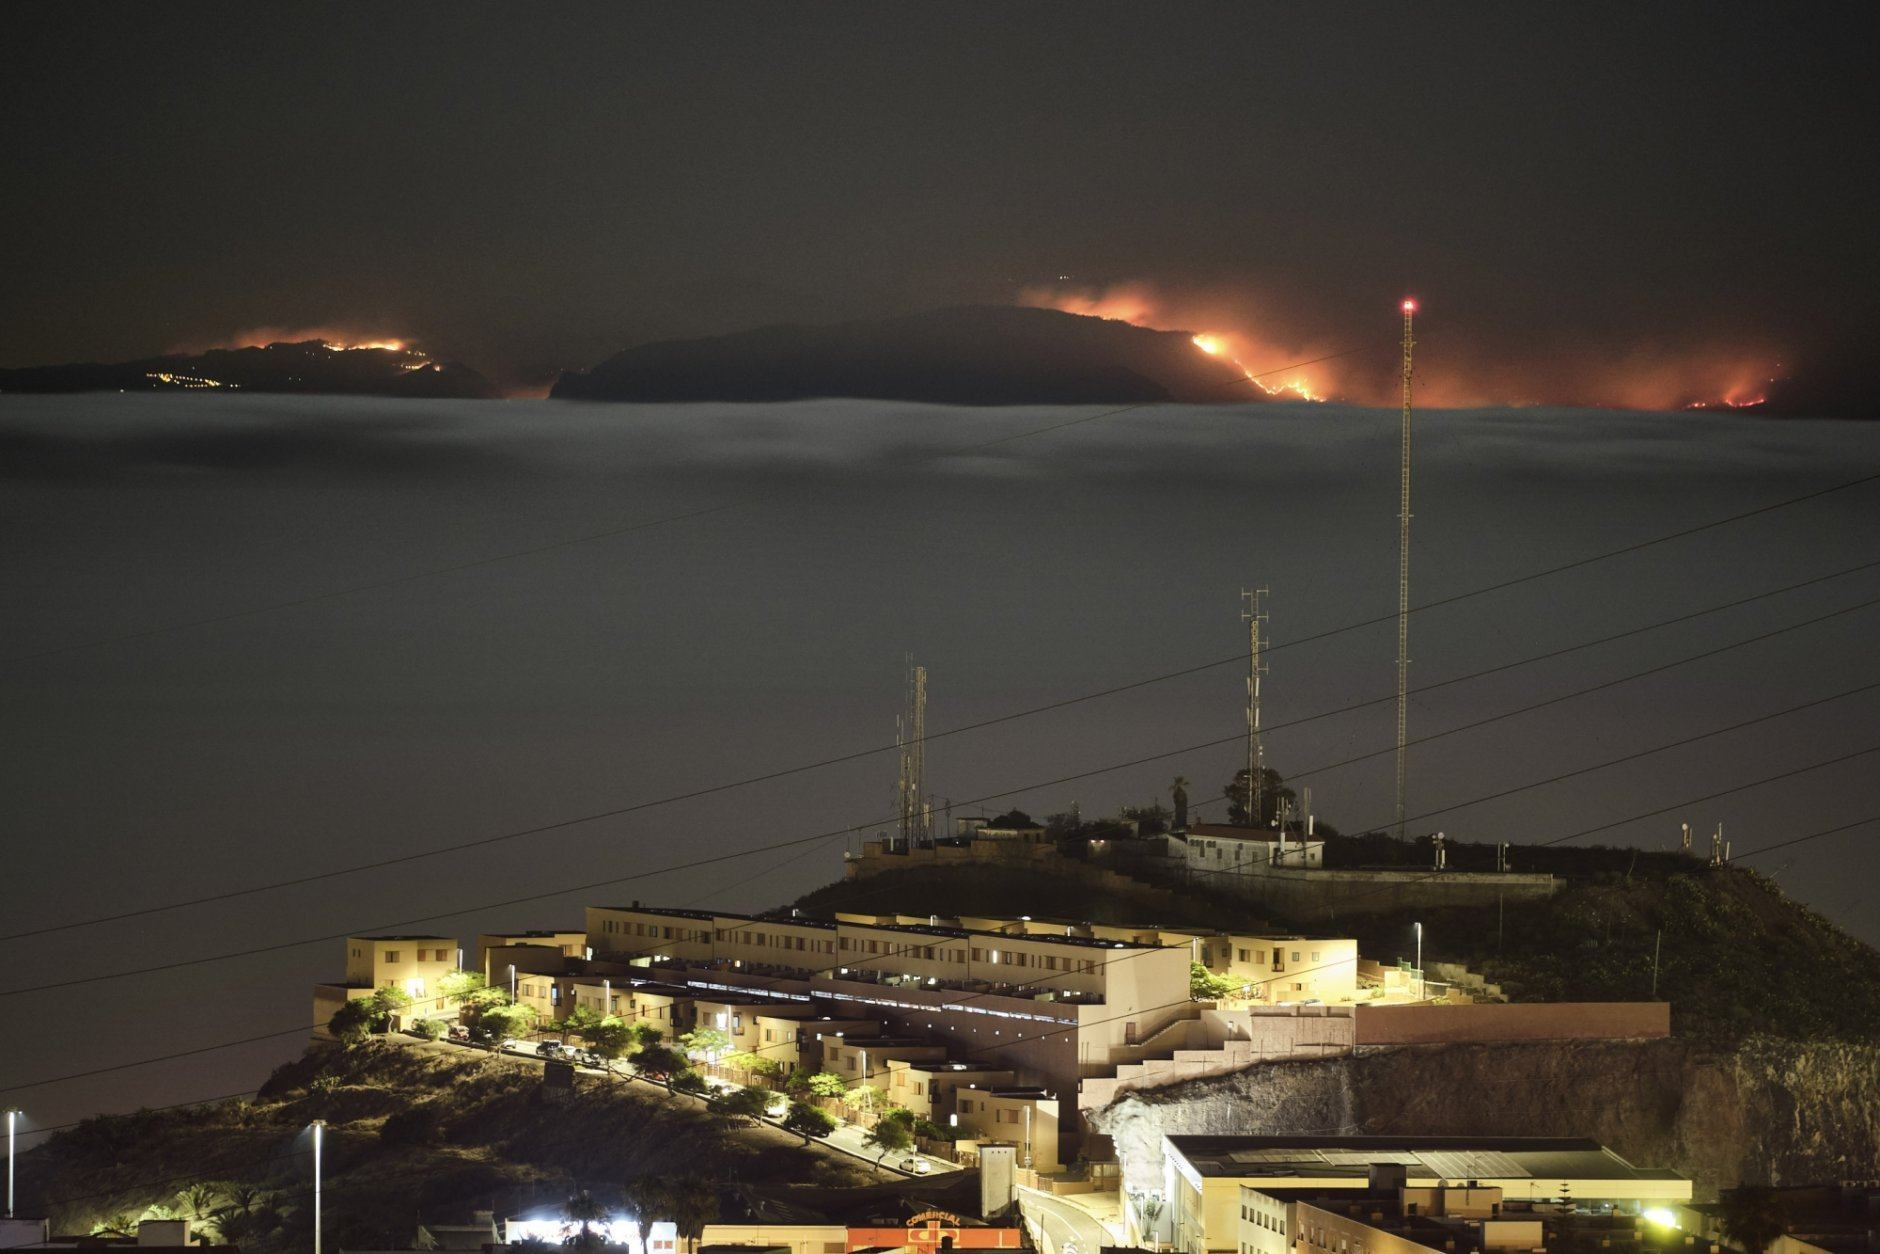 <p>The fire on the mountains of the Canary Islands in this view taken from Santa Cruz de Tenerife island, Spain, early Monday, Aug. 19, 2019. Authorities on Spain&#8217;s Canary Islands say around 4,000 people have been evacuated due to a wildfire that has ravaged more than 1,700 hectares (4,200 acres) since it broke out a day ago. (AP Photo/Andres Gutierrez)</p>